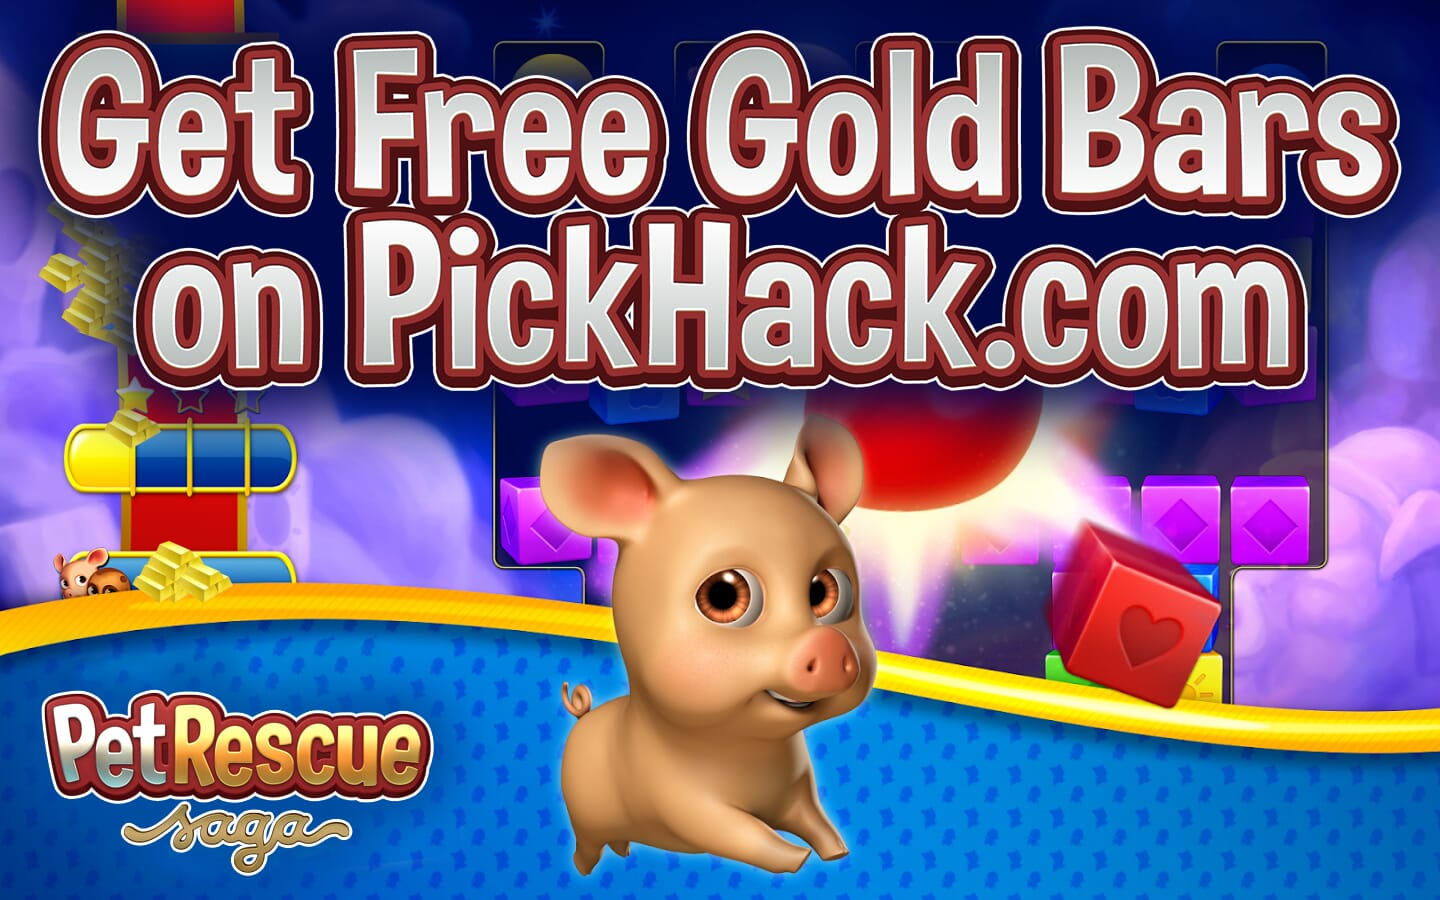 Image currently unavailable. Go to www.generator.pickhack.com and choose Pet Rescue Saga image, you will be redirect to Pet Rescue Saga Generator site.